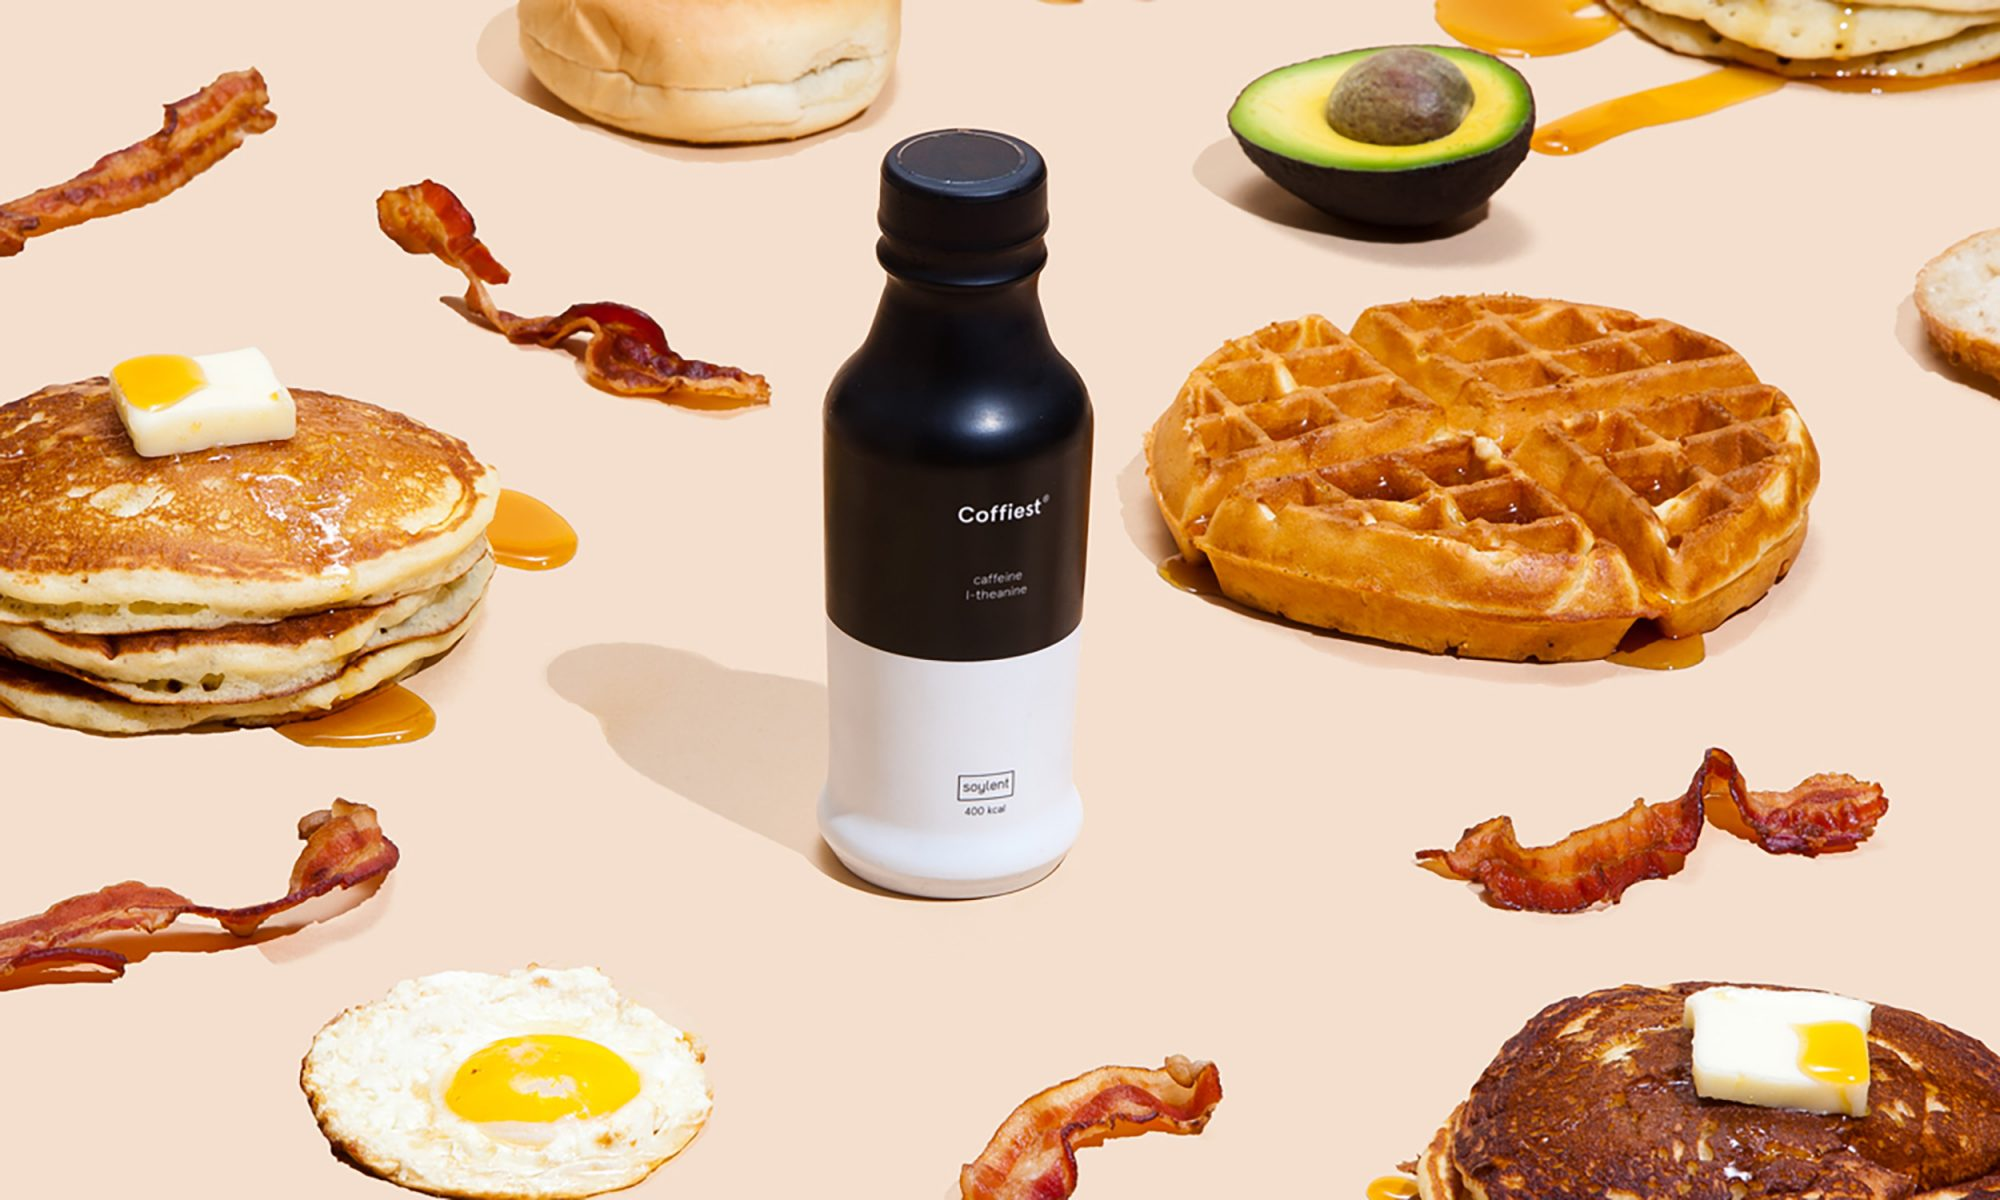 EC: Soylent Wants to Replace Your Breakfast with Something Called Coffiest